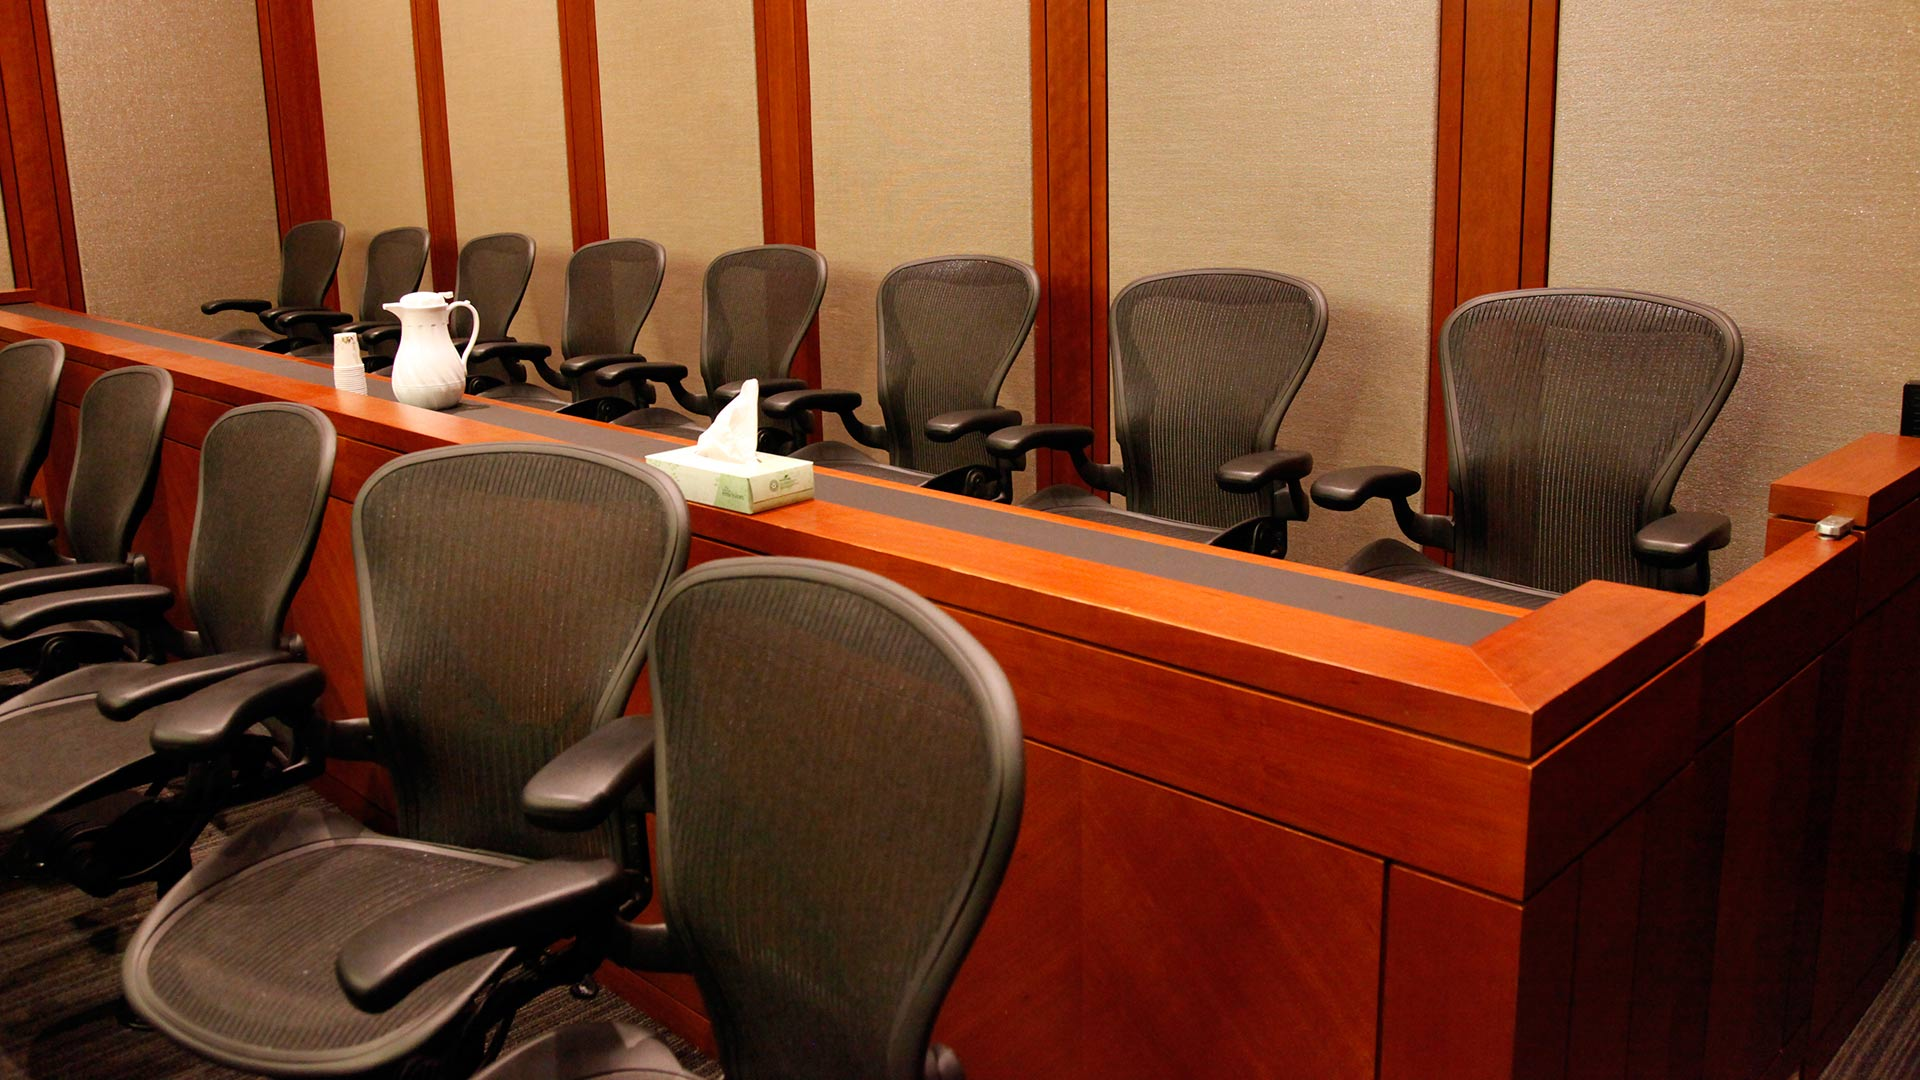 Empty seats await their jurors.